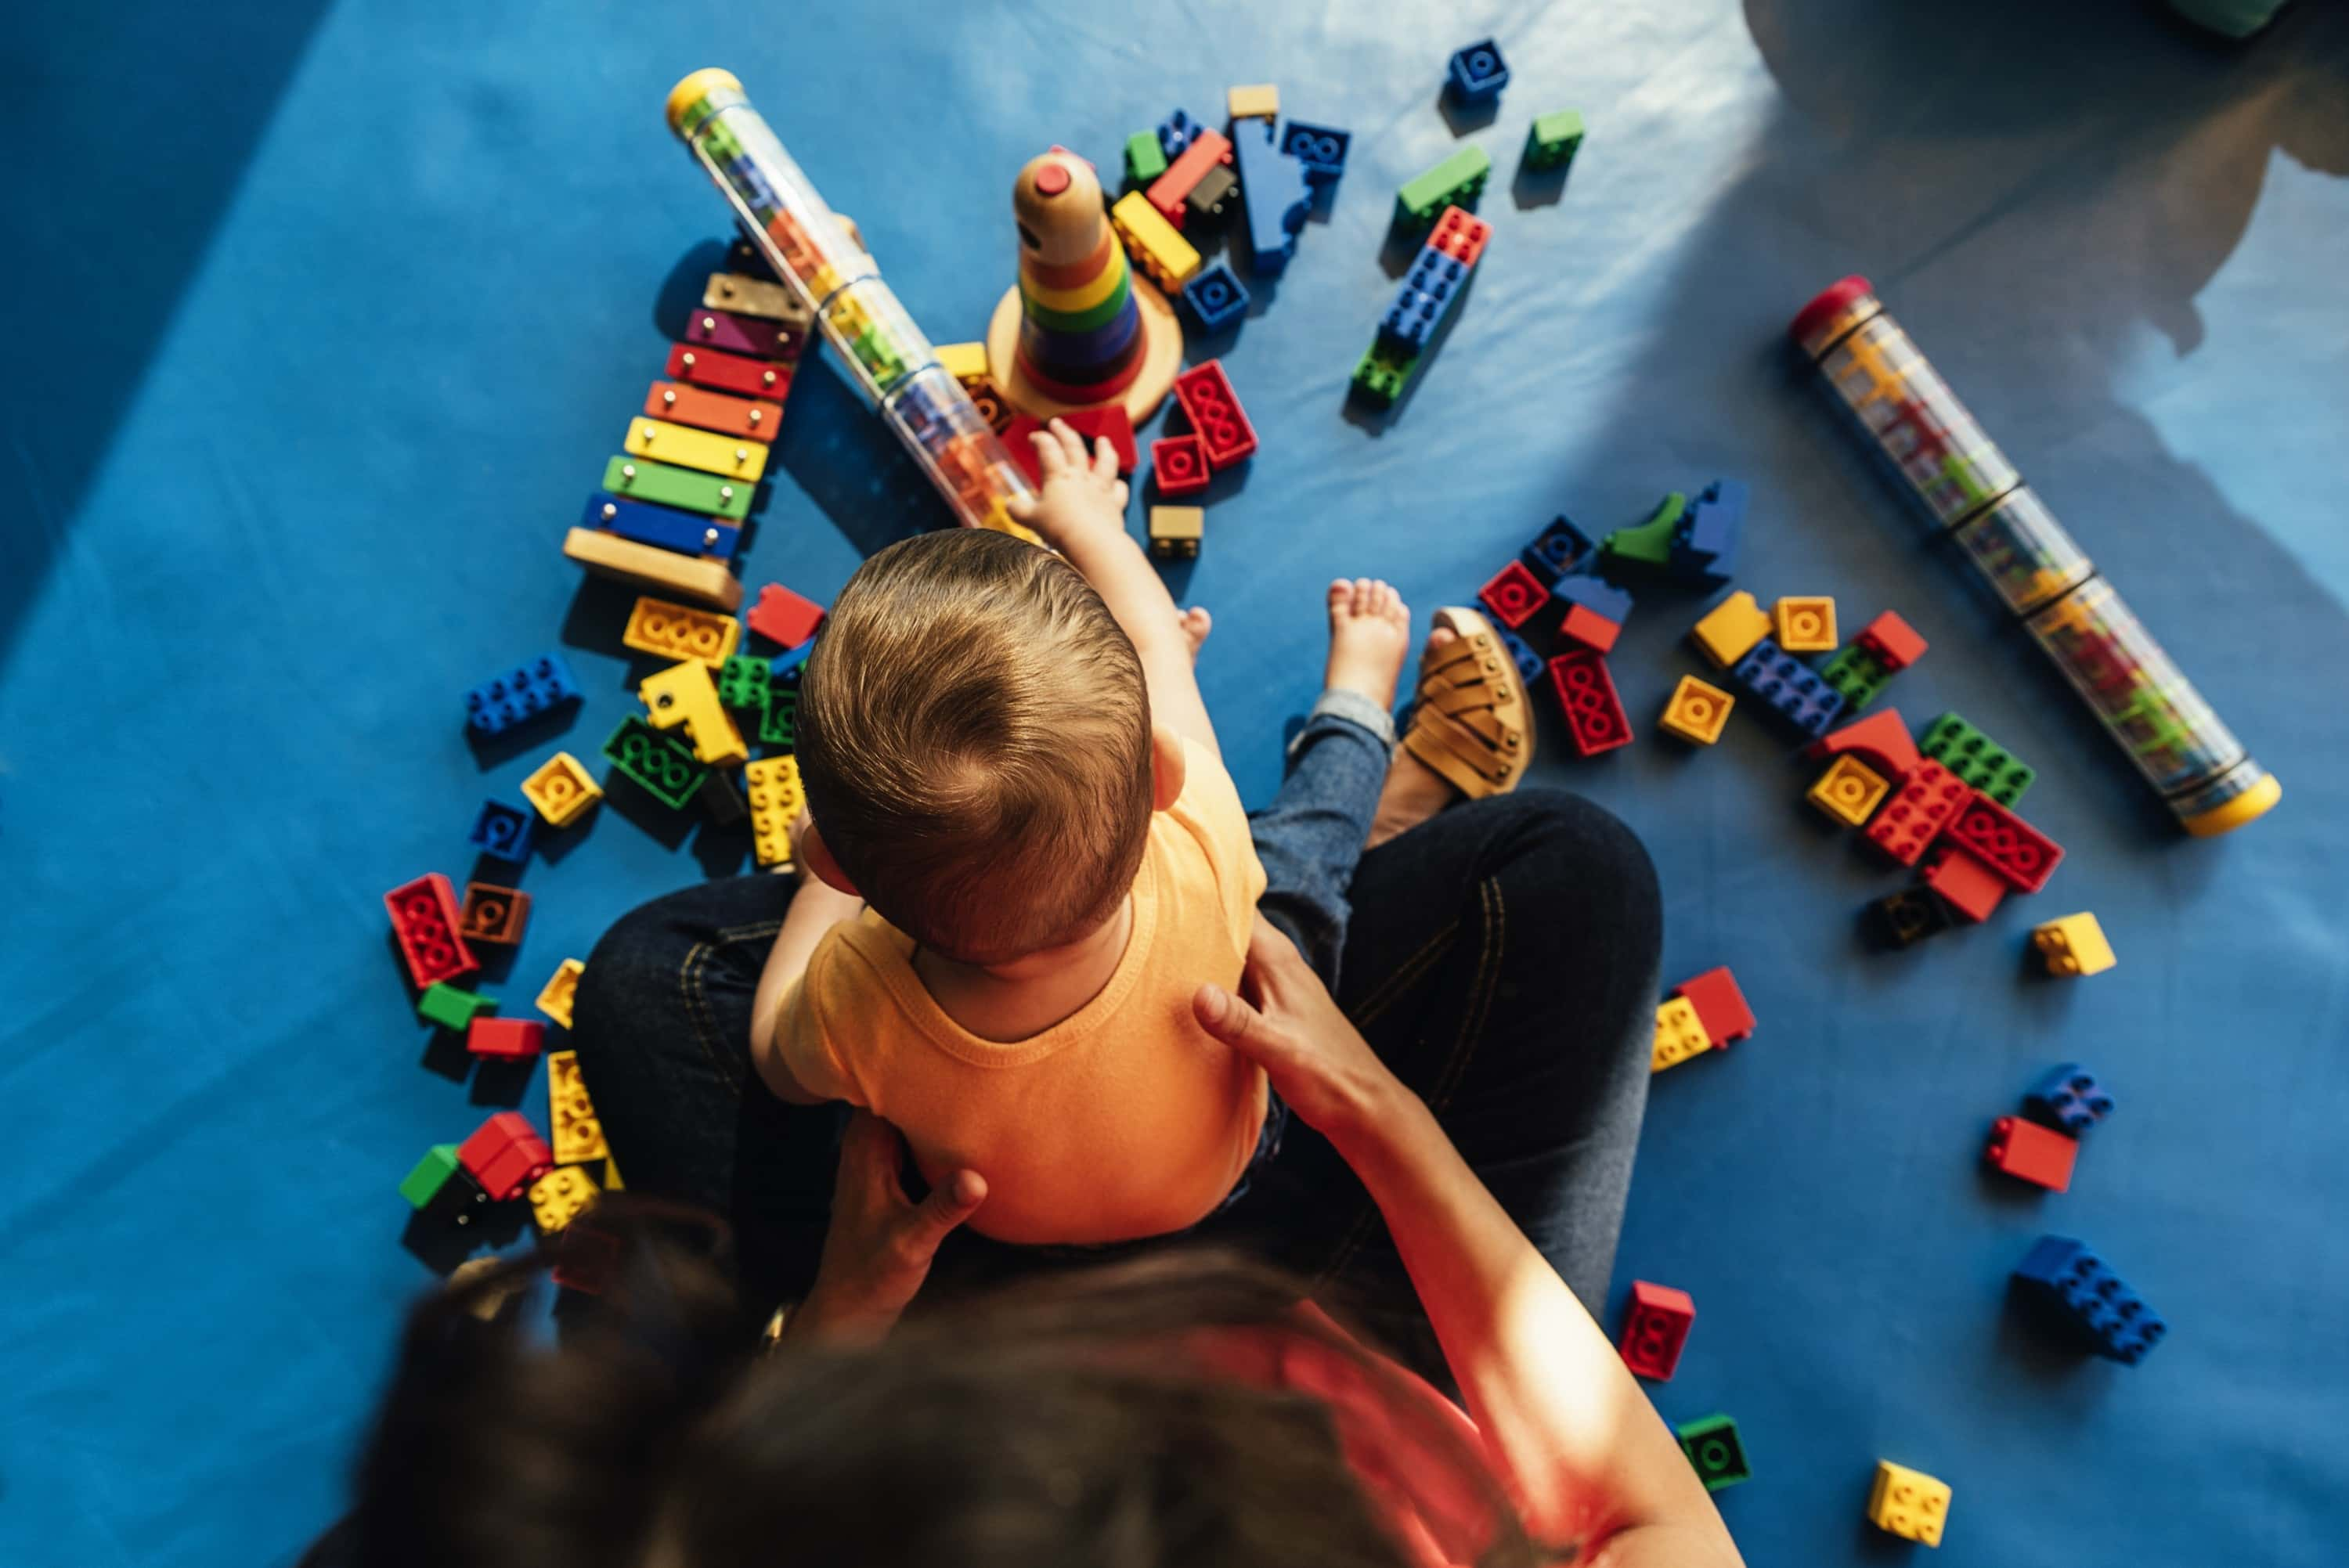 Facilitate play-based learning at home with these fun ideas